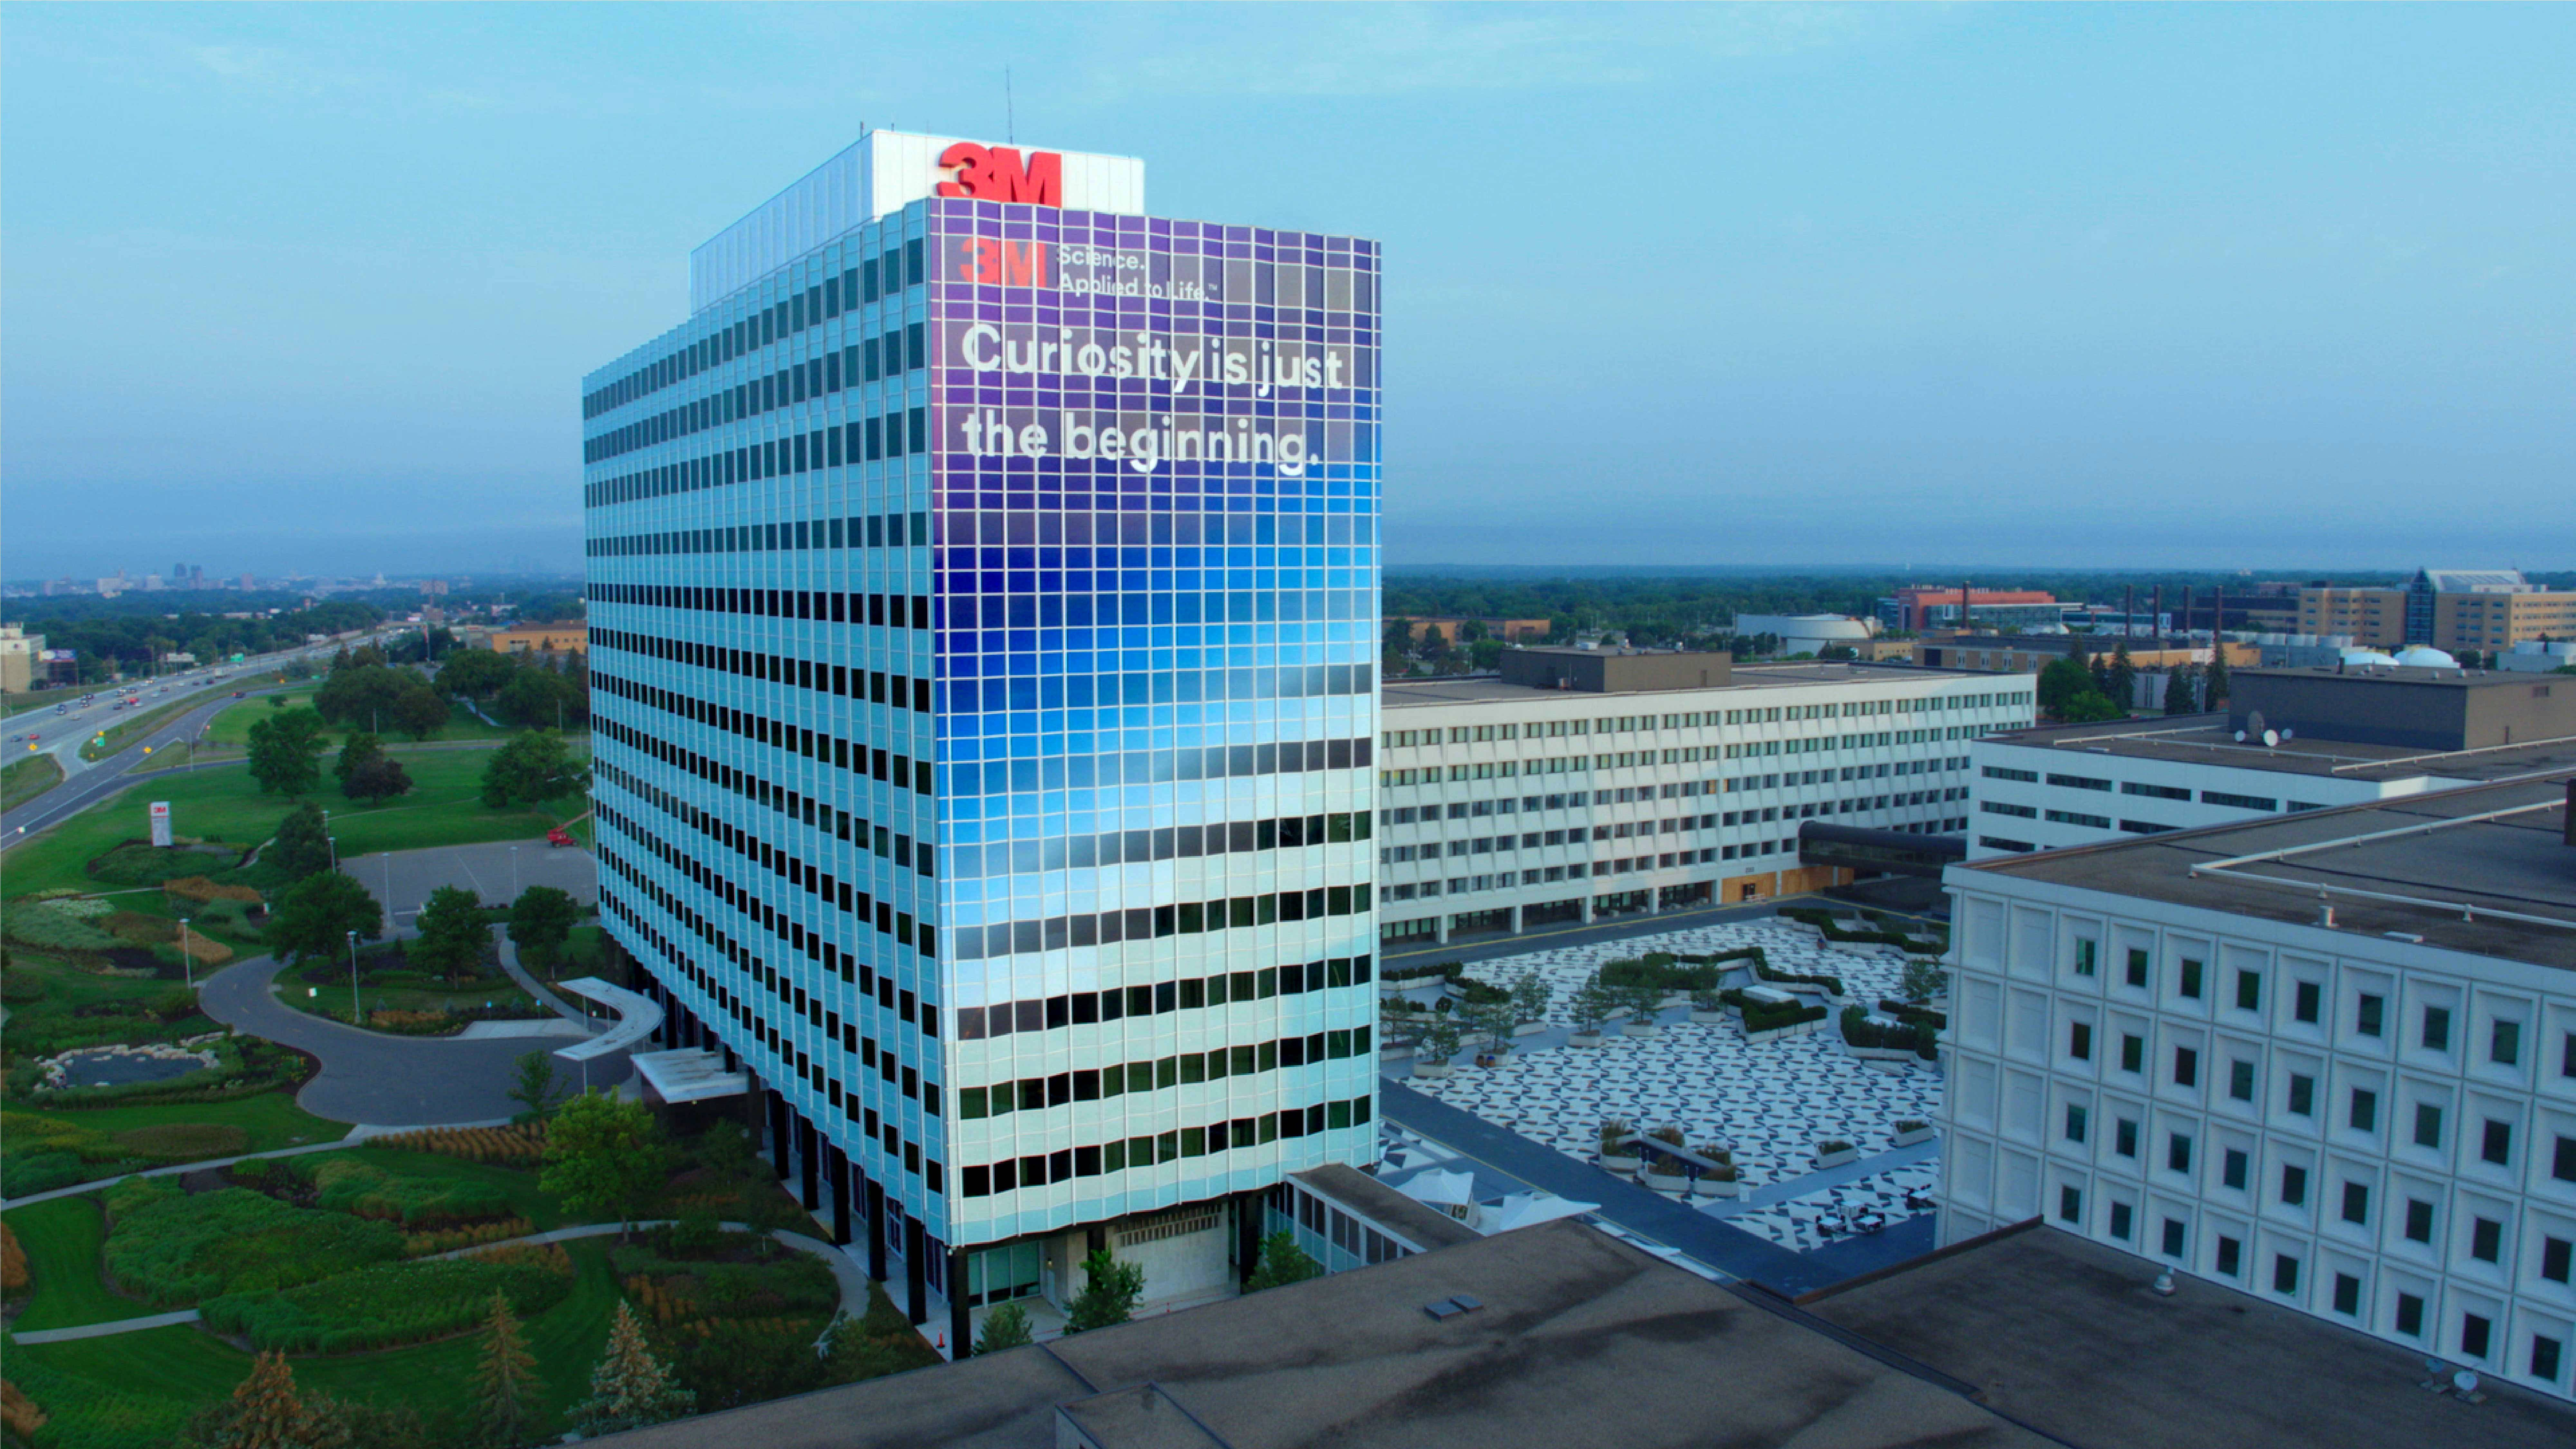 3m transforms main headquarters to inspire curiosity and wonder 3m